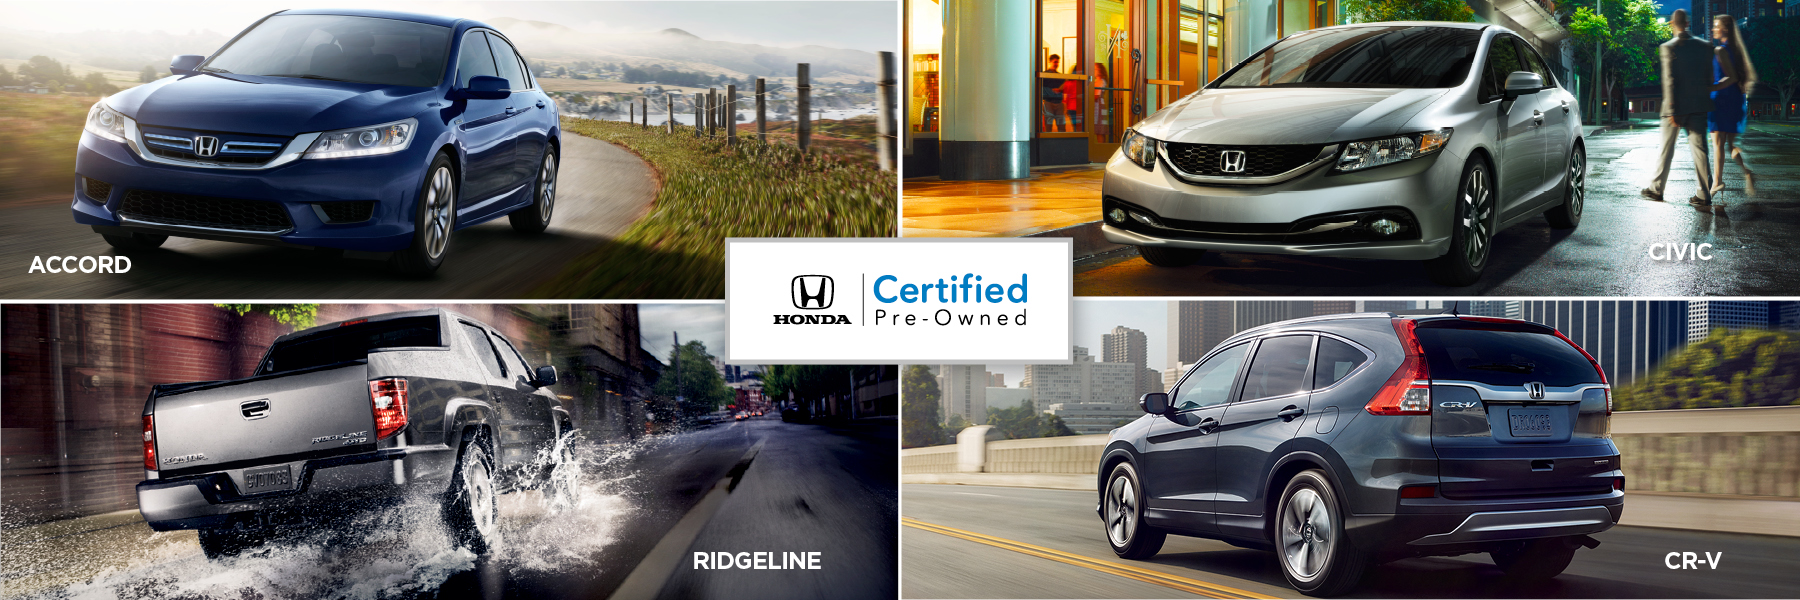 New England Honda Certified Pre-Owned